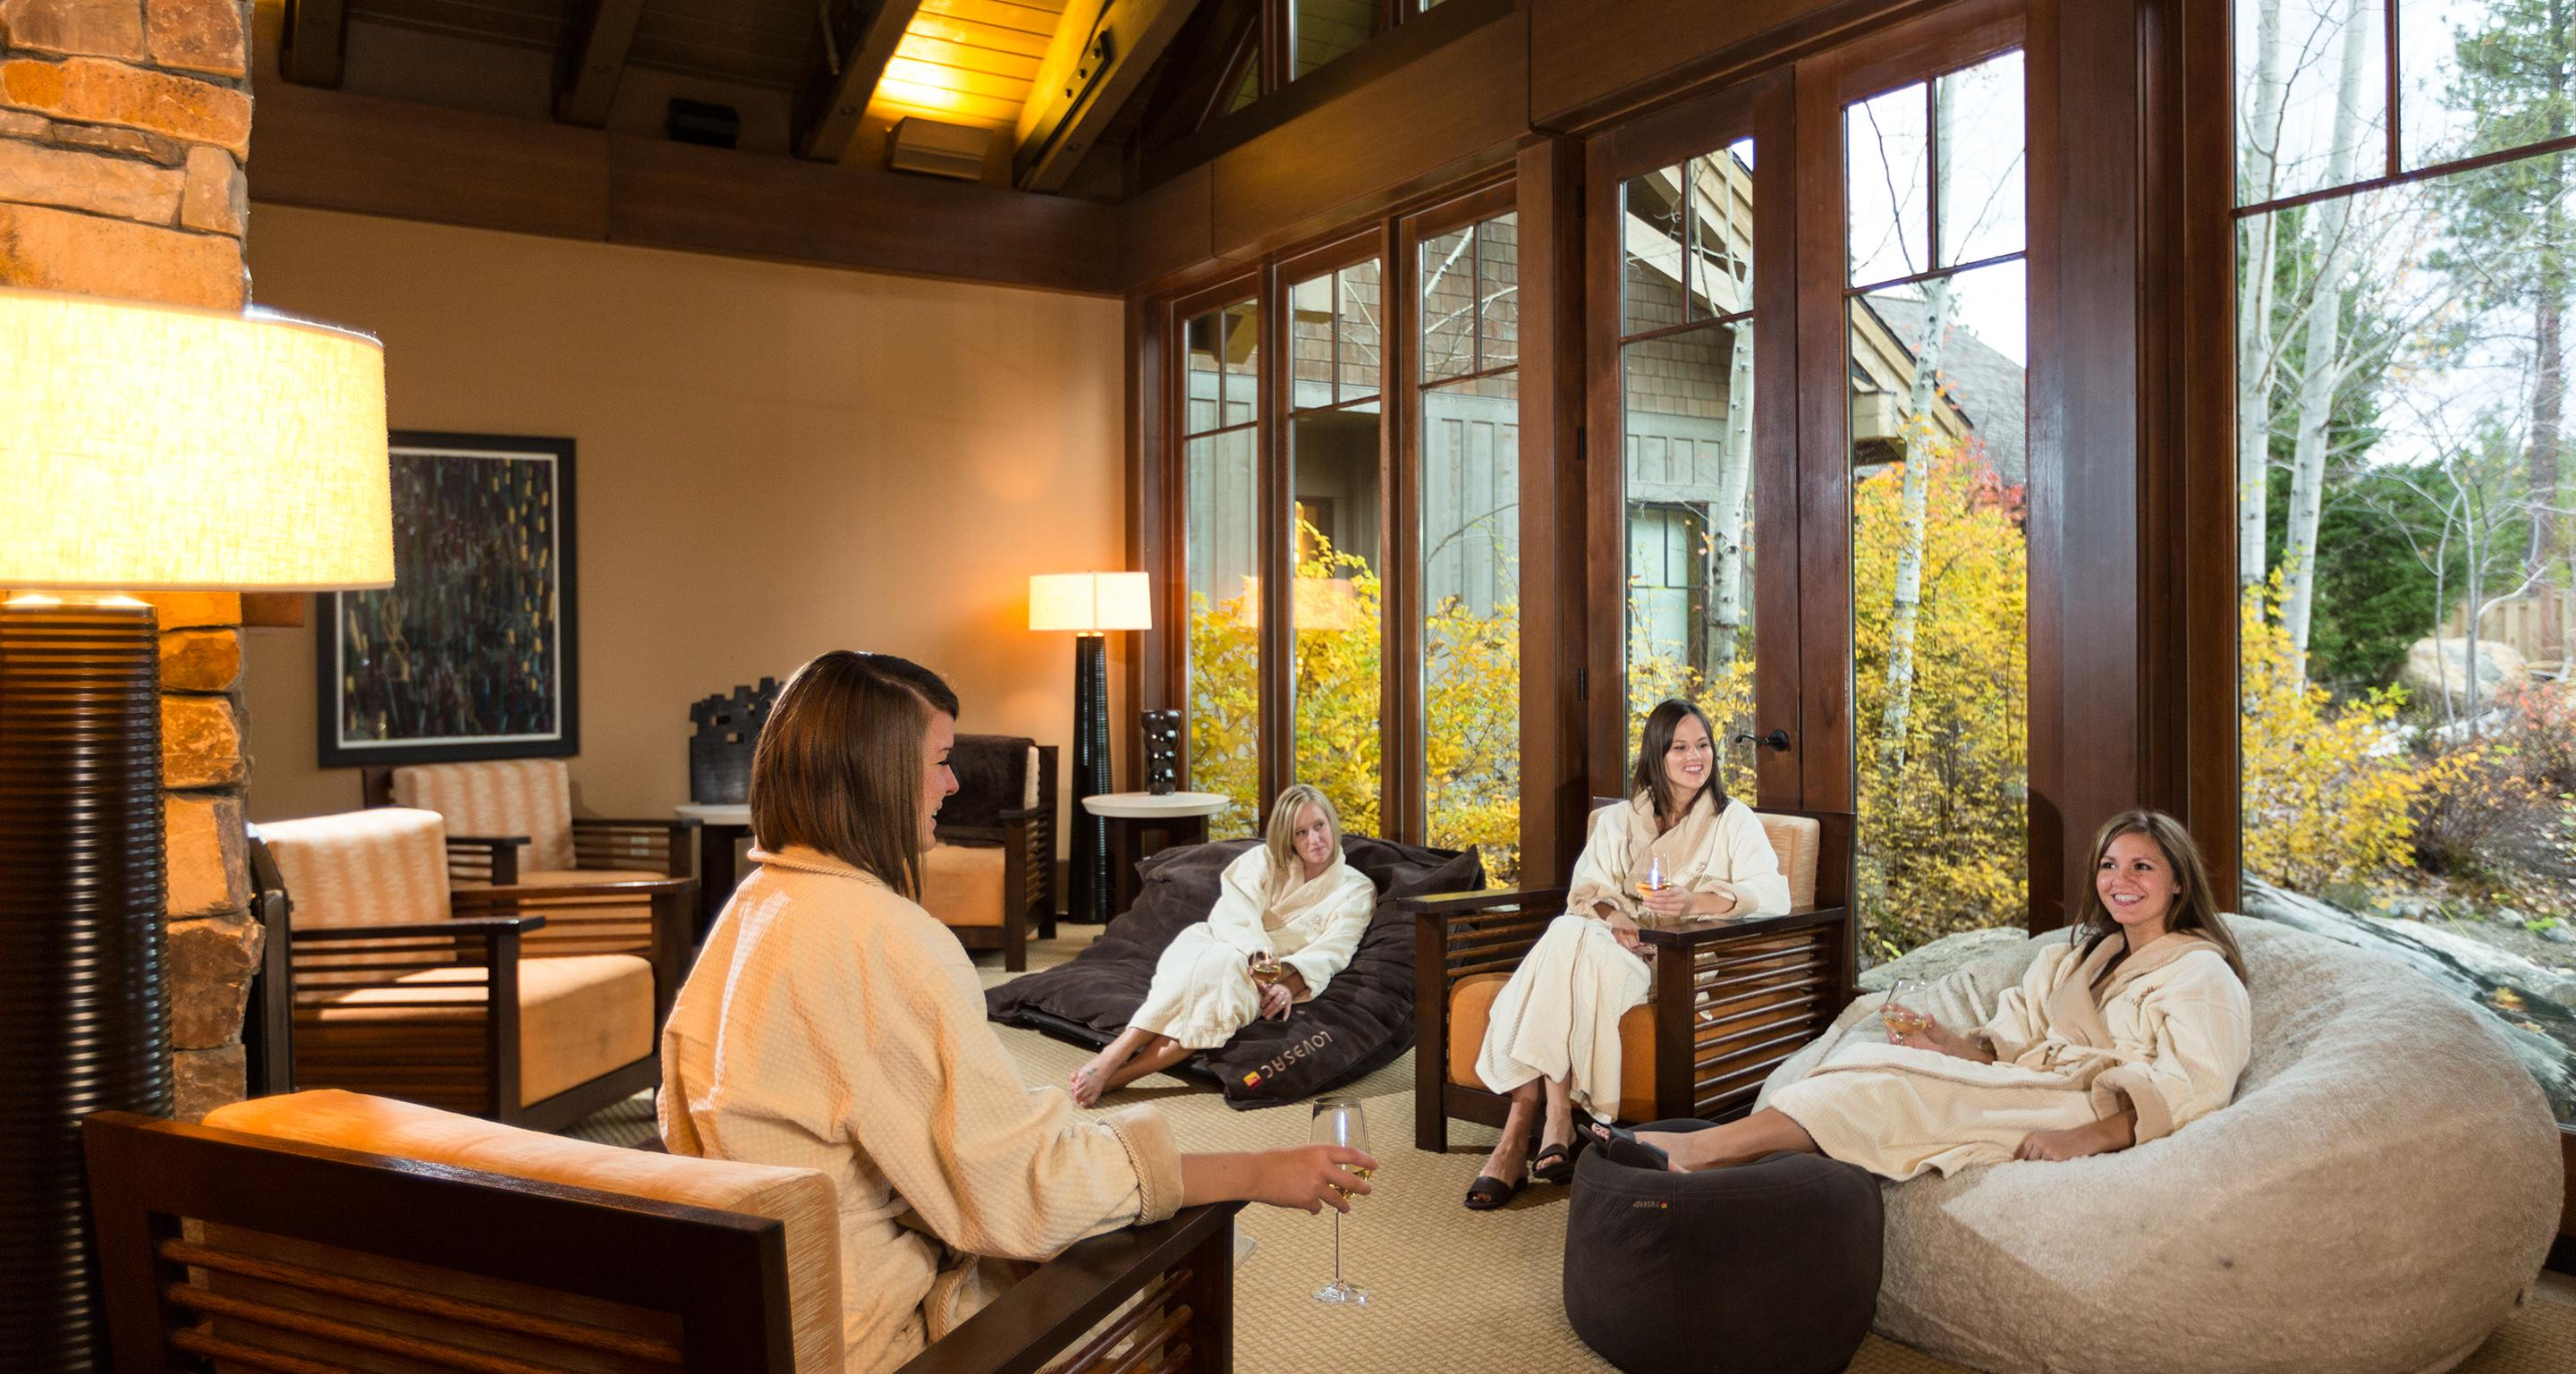 Relaxation for a day with your girlfriends at Glade Spring Spa is very rejuvenating, especially with the services on the new spa menu.